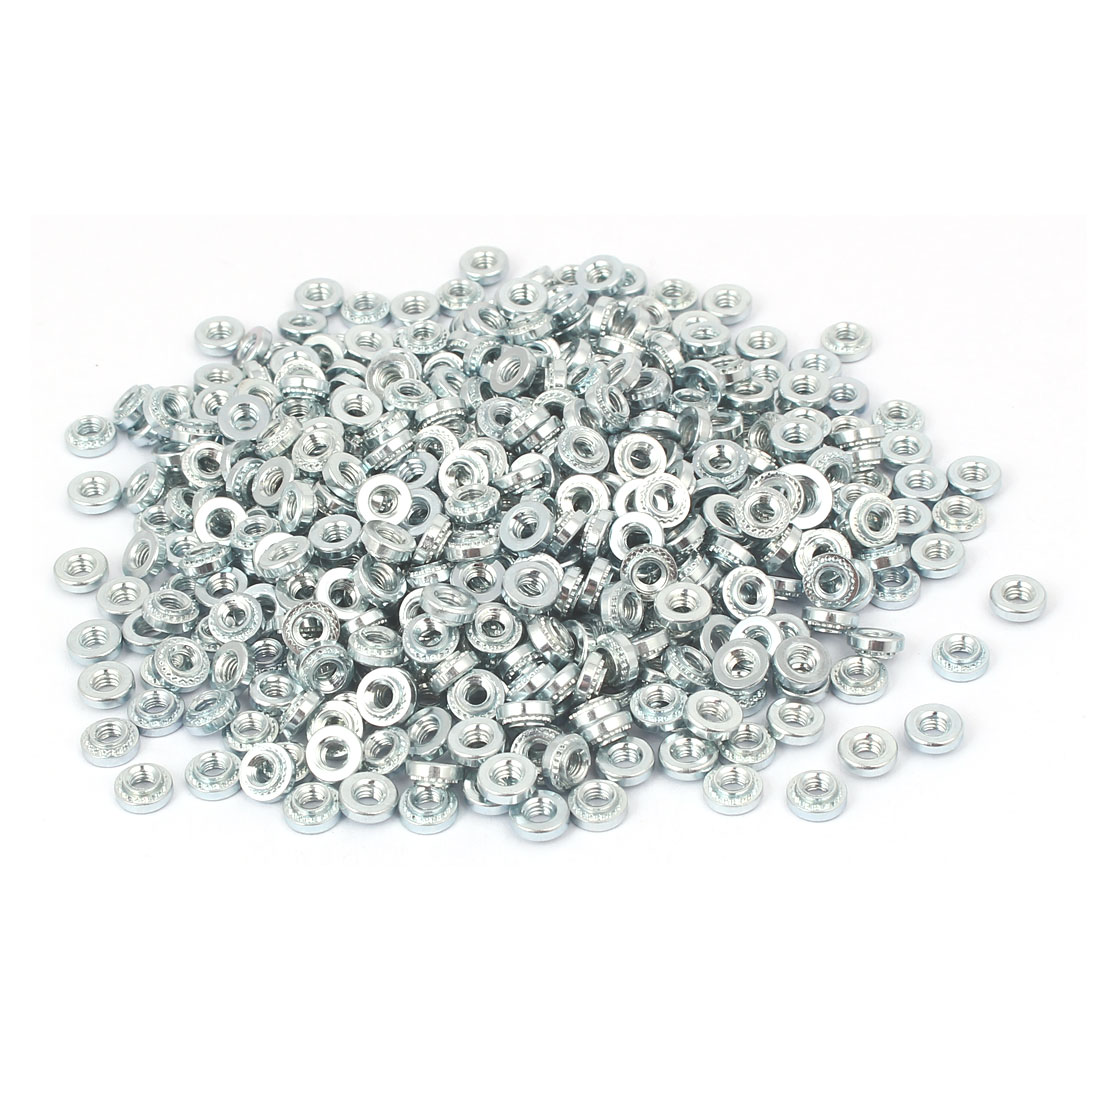 S-M3-1 Carbon Steel Self Clinching Rivet Nut Fastener 500pcs for 1.0mm Thin Plates